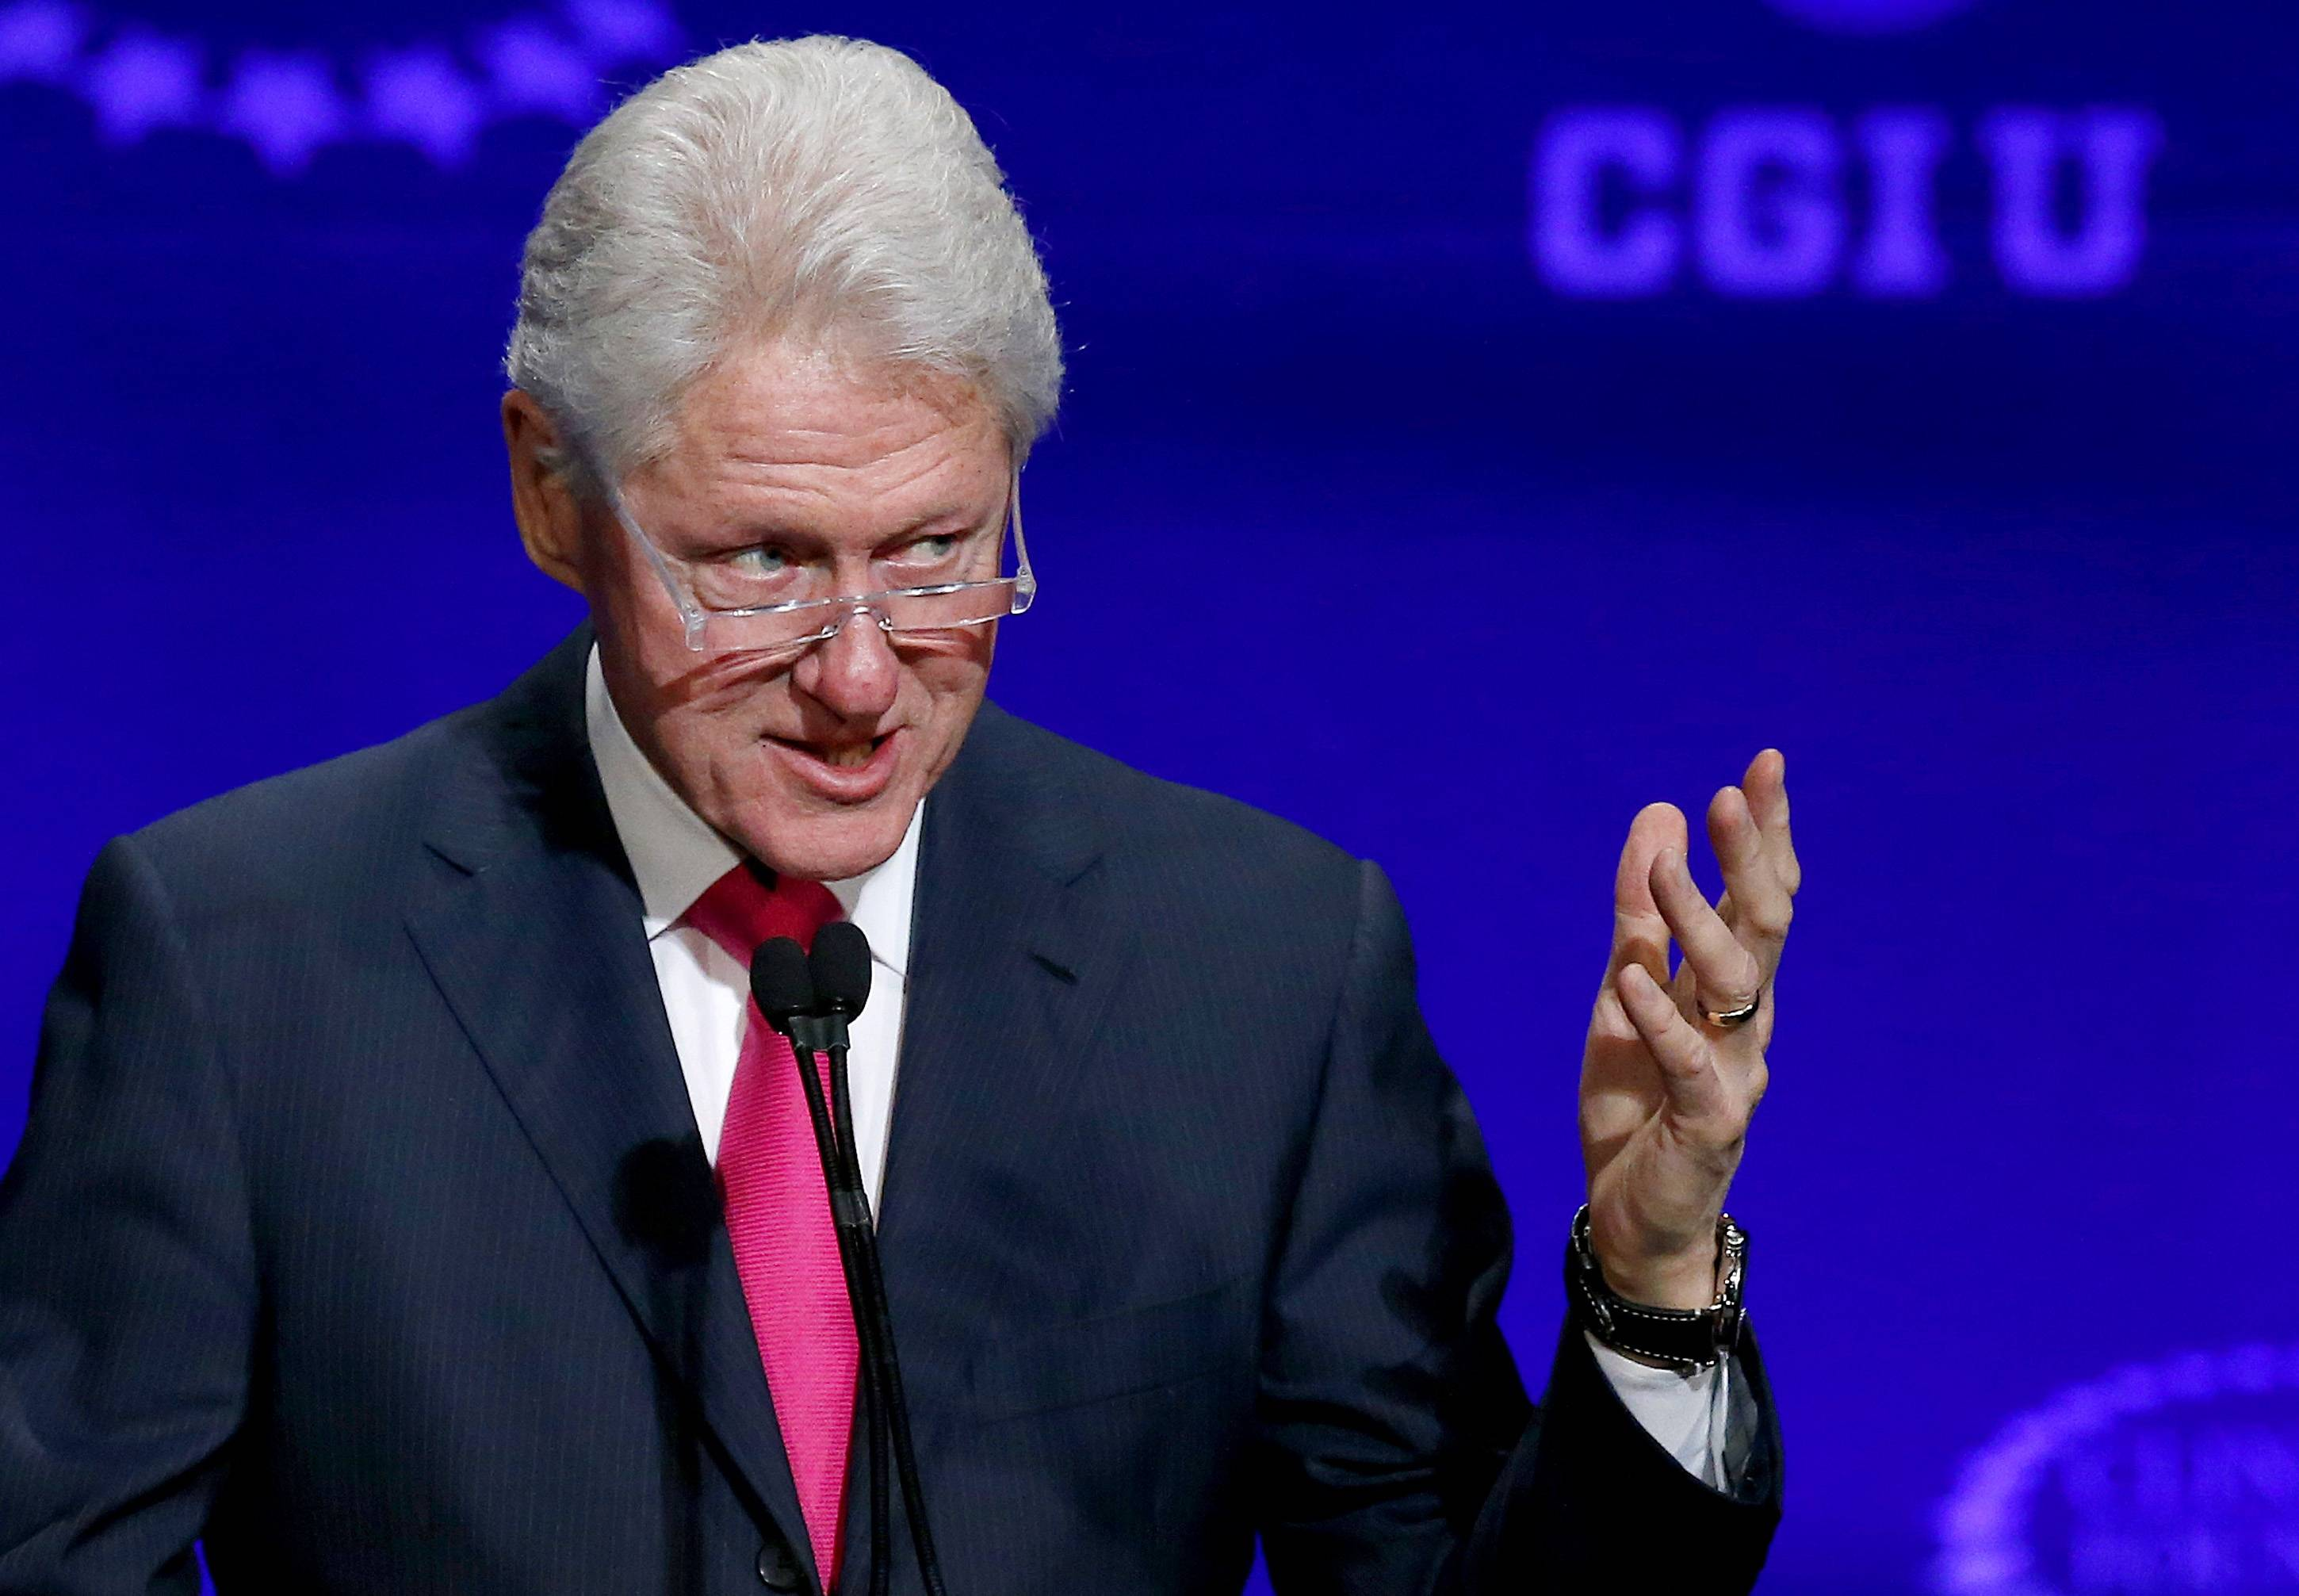 Ex-president Bill Clinton speaks at a student conference for the Clinton Global Initiative University at Arizona State University, in this file photo.